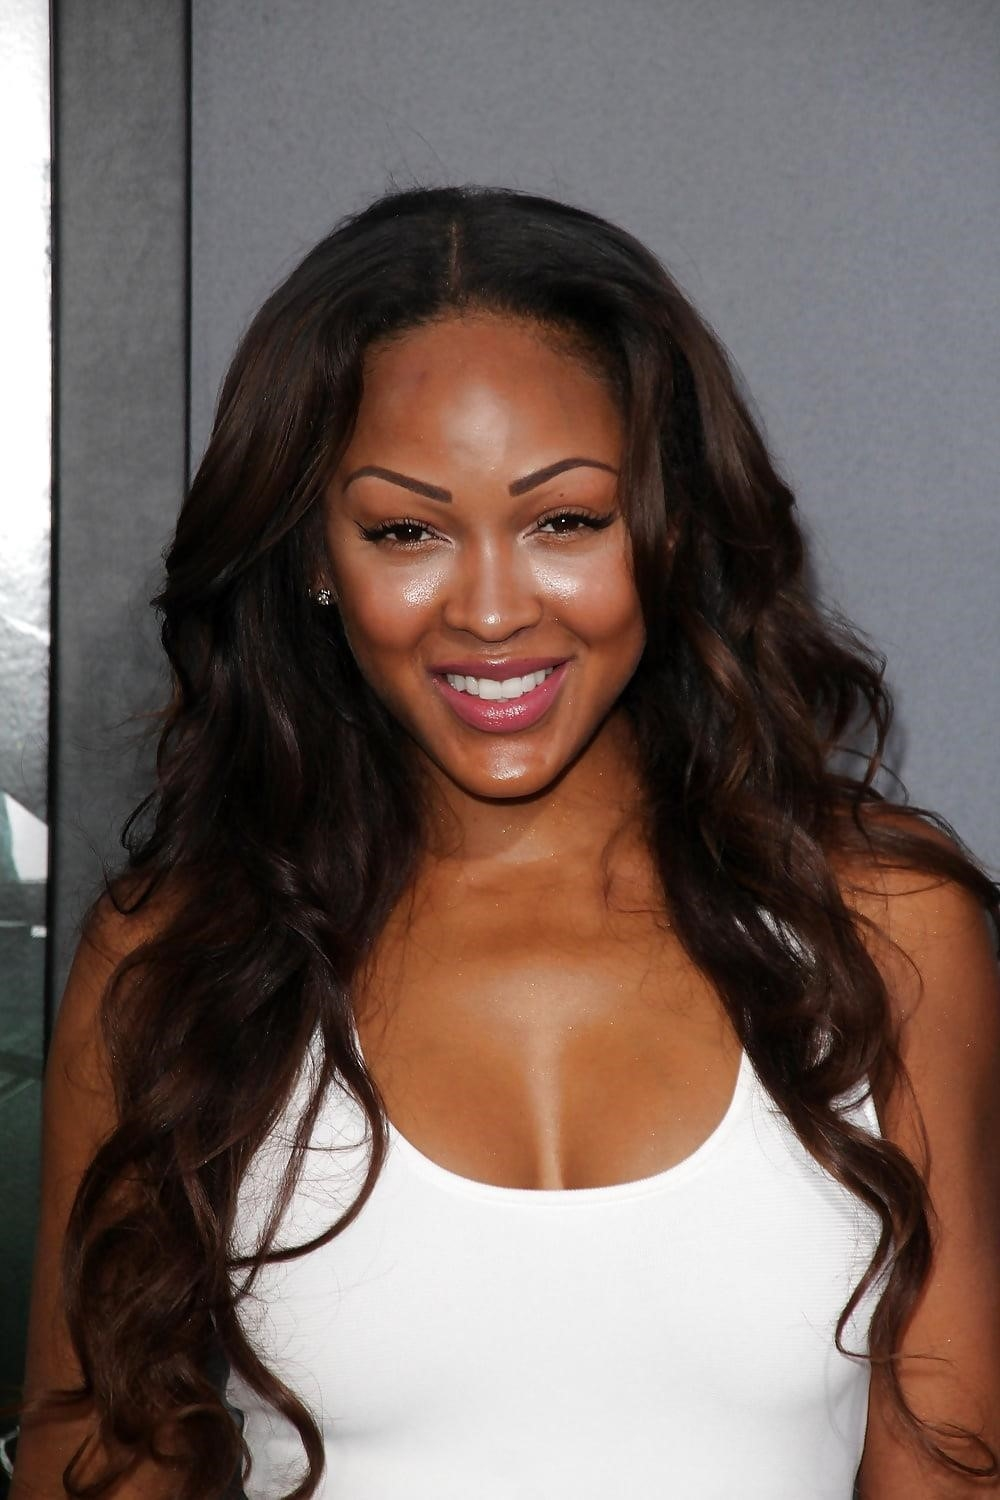 Meagan good nude pictures-8577